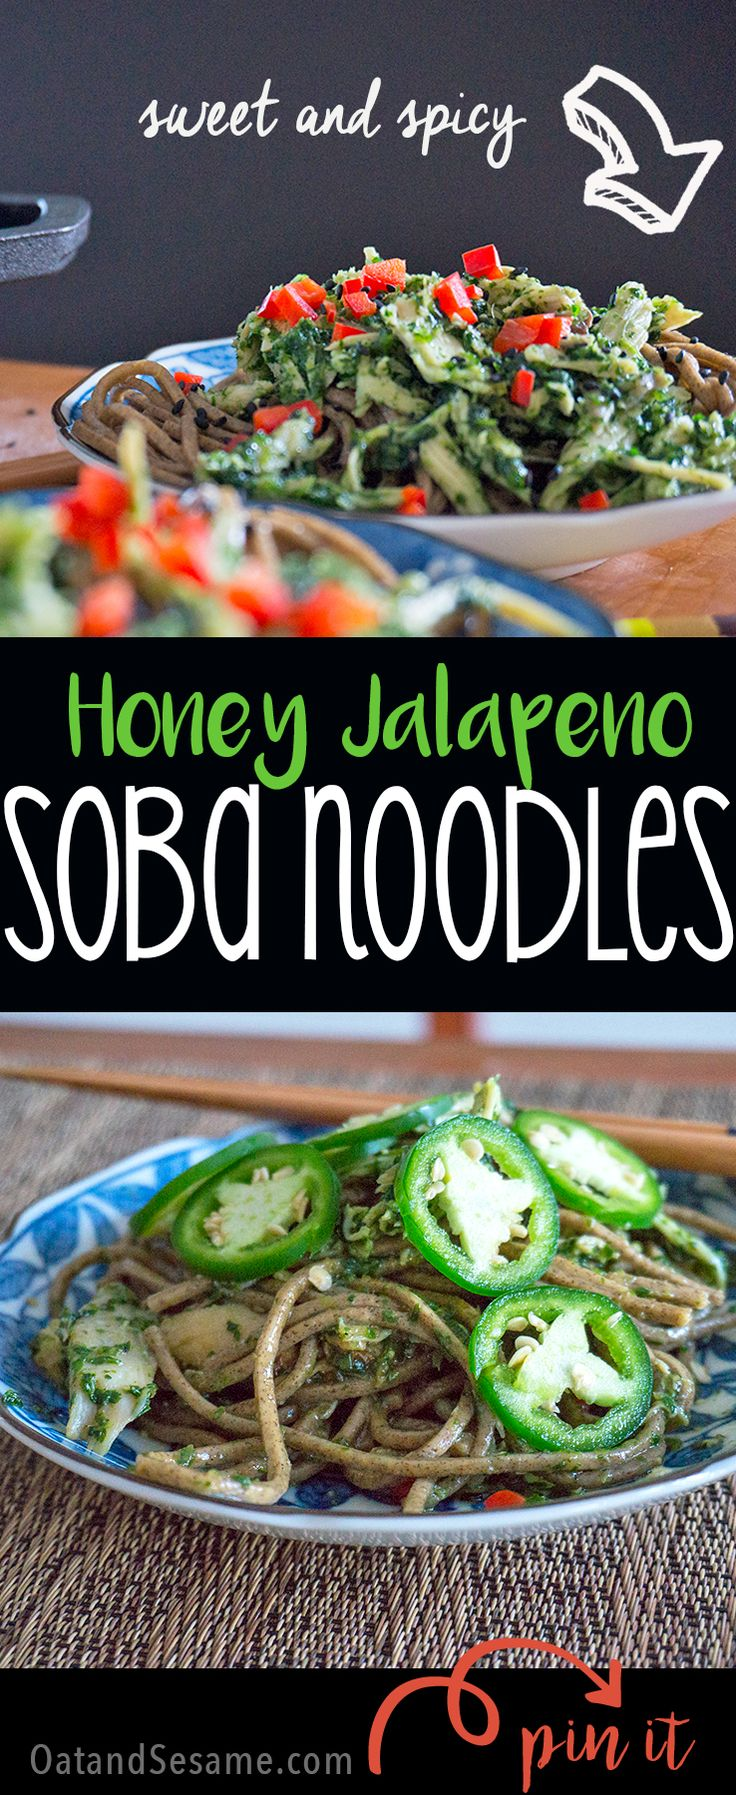 Honey-Jalapeño Chicken with Soba Noodles - sweet and spicy noodle dish with rotisserie chicken and a honey jalapeño cilantro sauce all under 30 minutes! | CHICKEN | DINNER | UNDER 30 | ASIAN | NOODLES | Recipe at OatandSesame.com